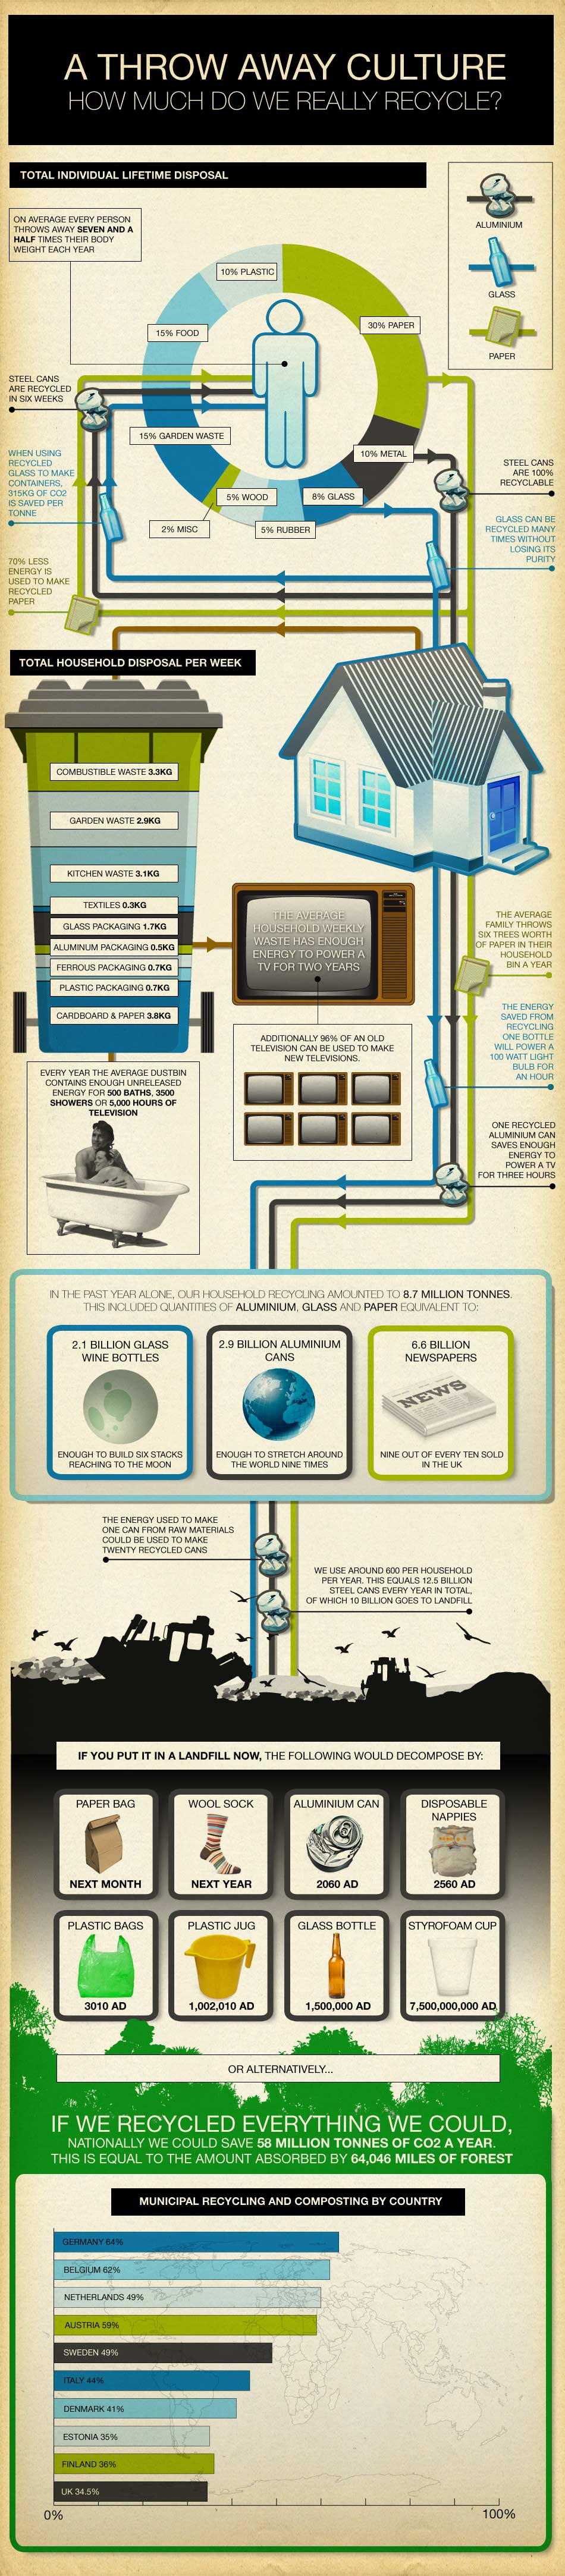 recycling-infographic.jpeg